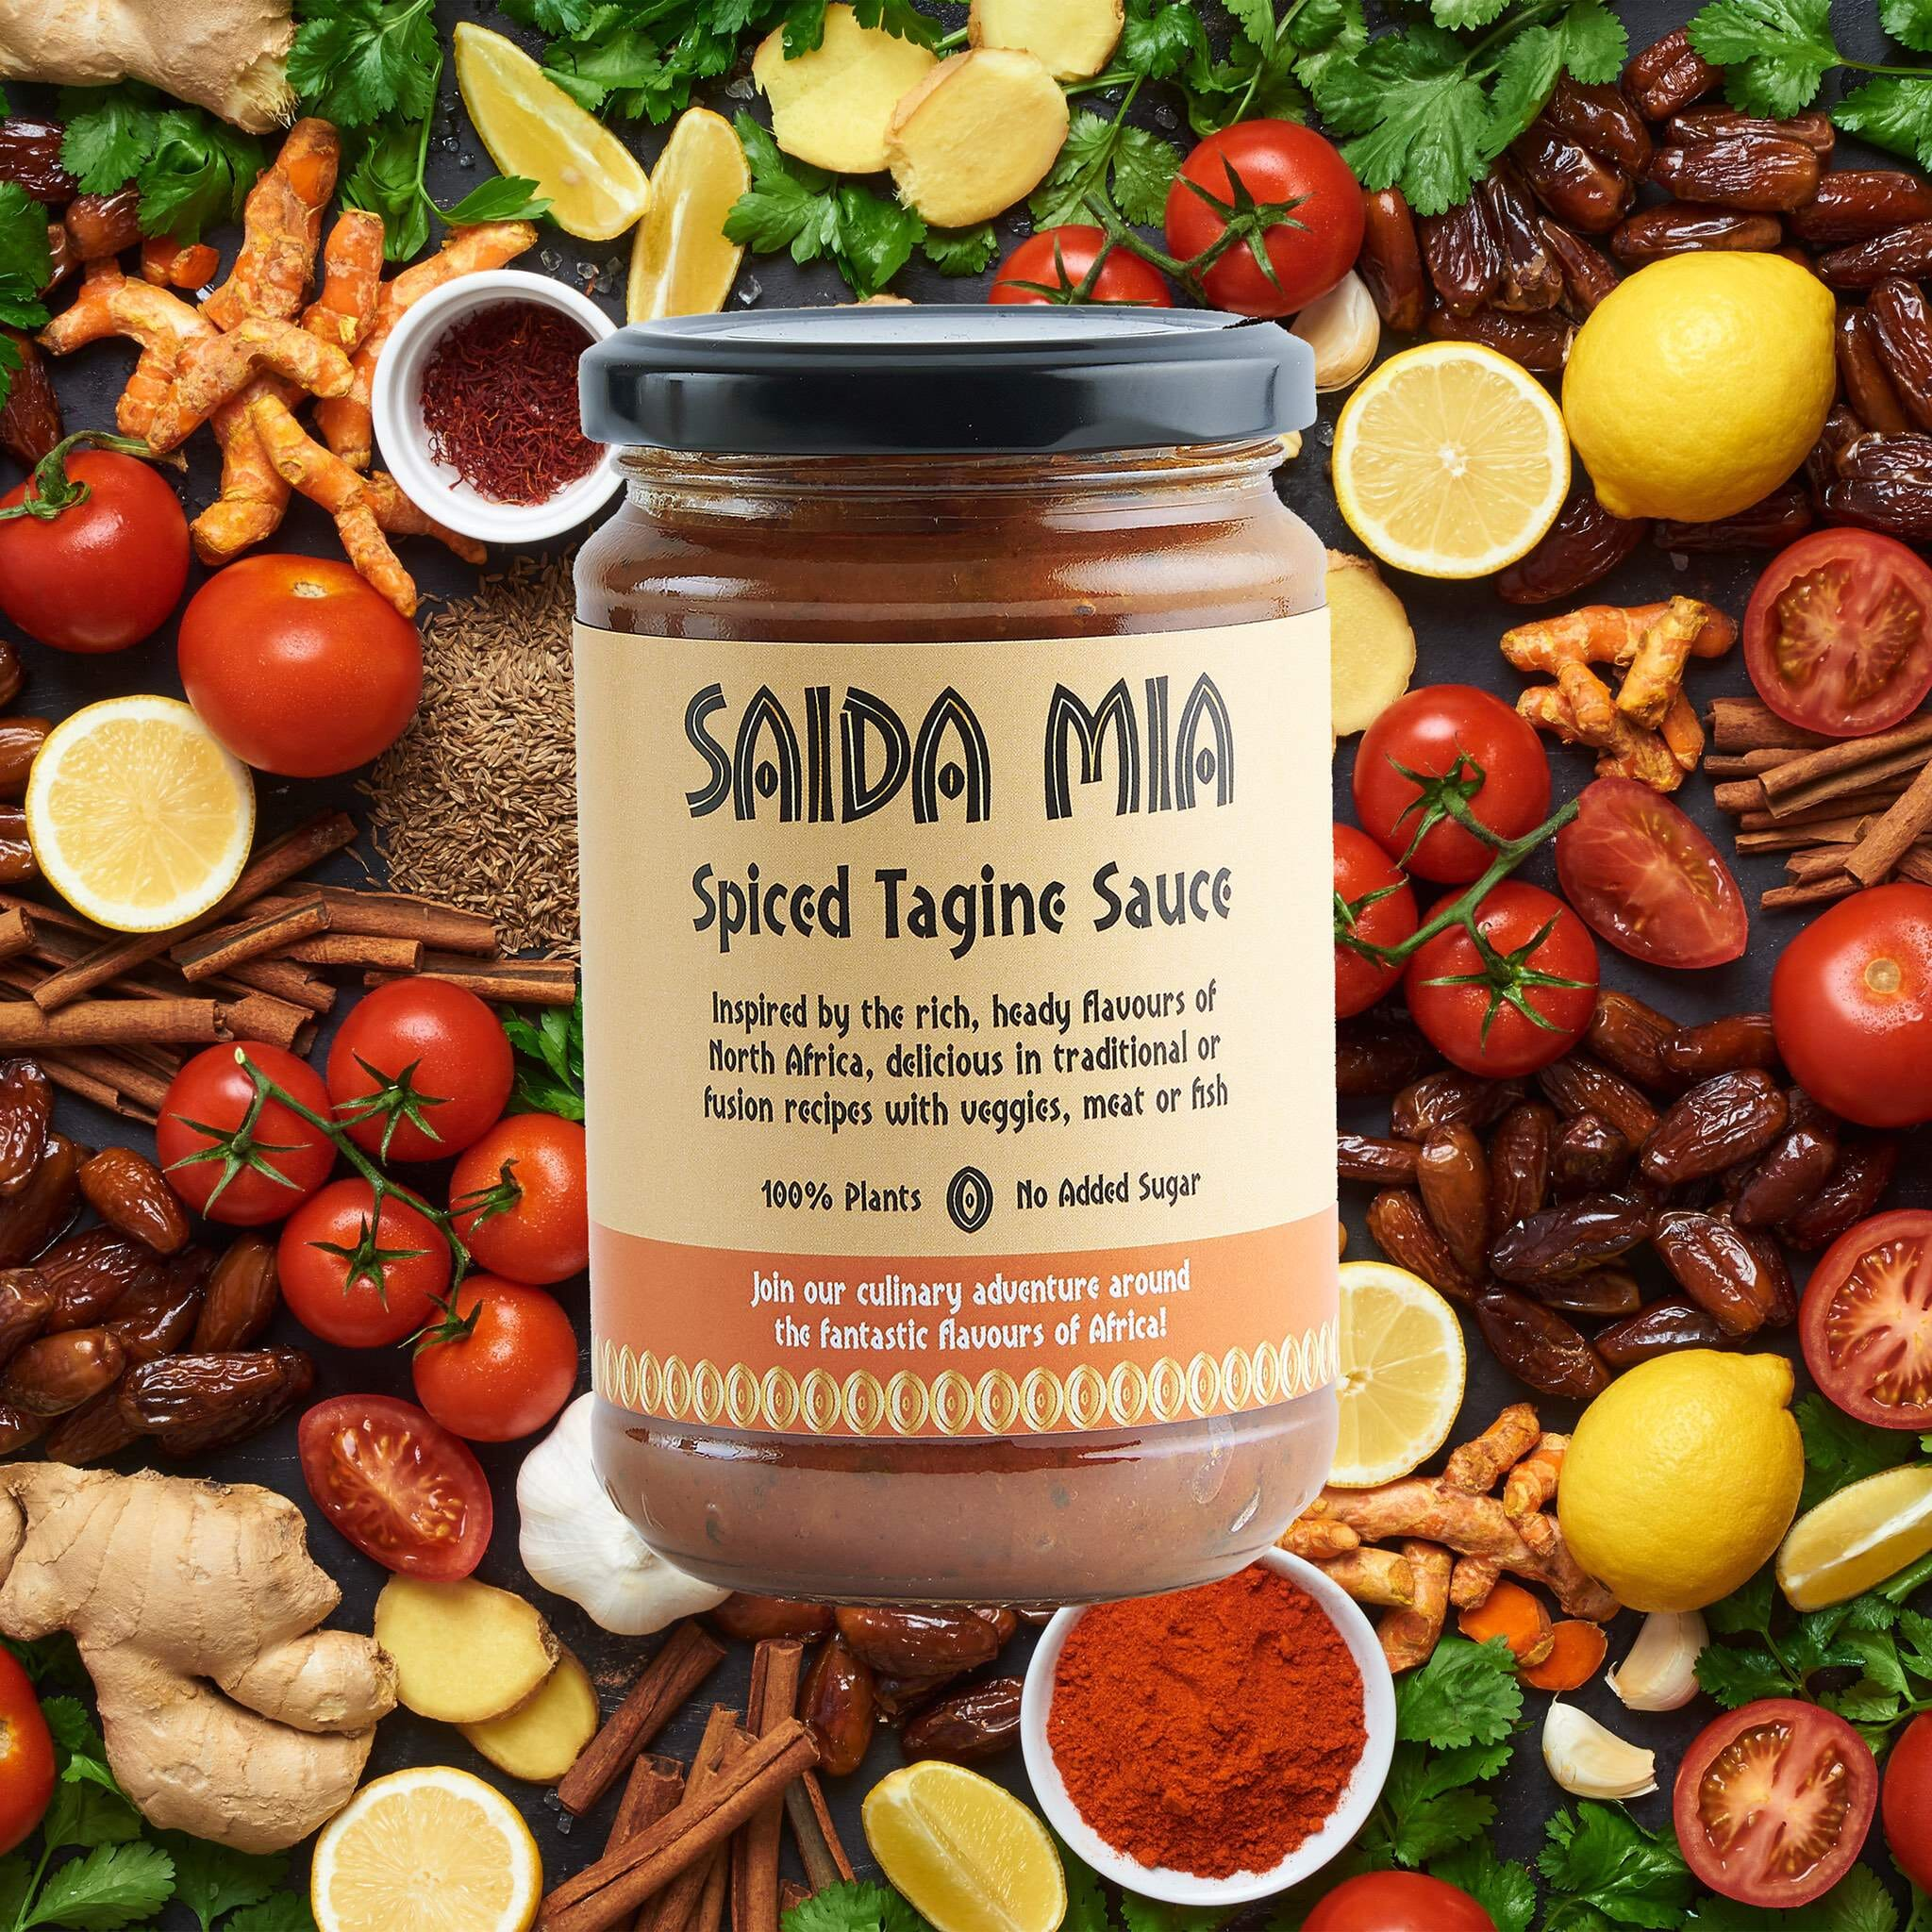 Saida Mia African Products Tagine Sauce Pack Ingredients Image